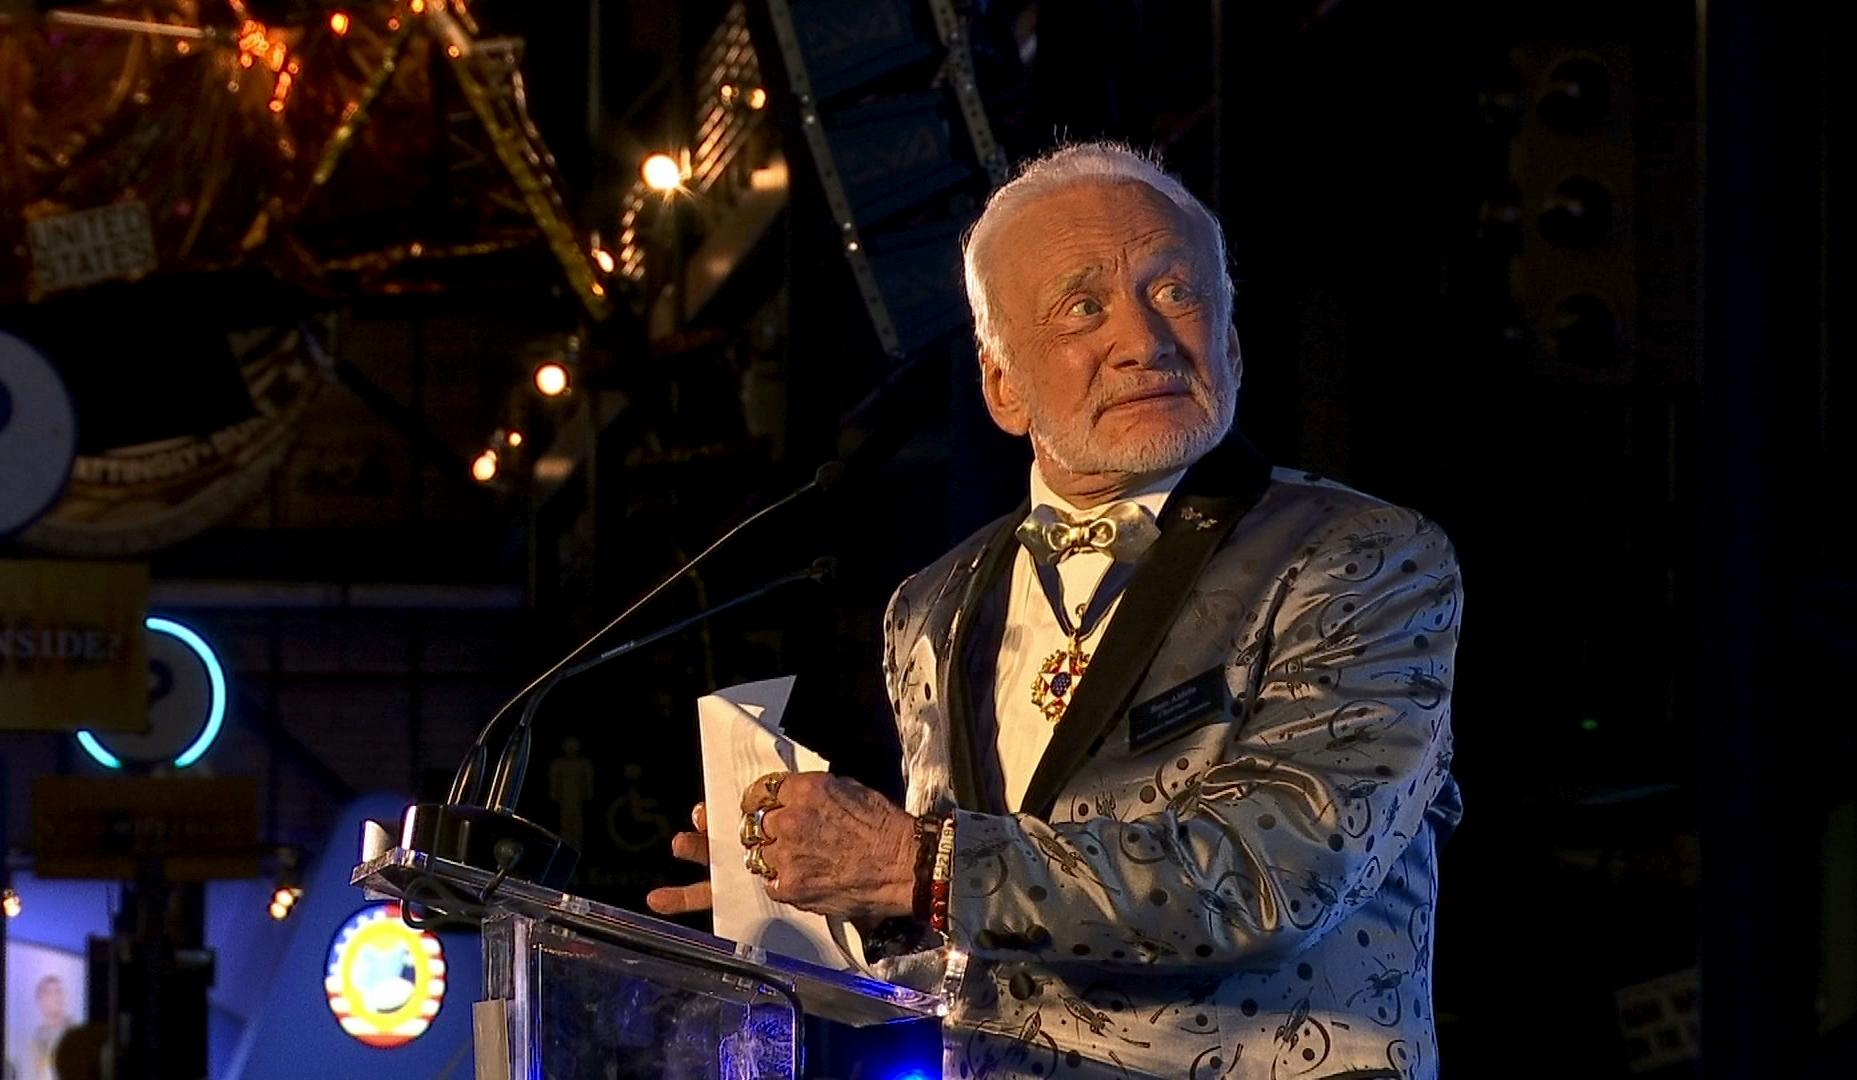 Apollo 11 astronaut Buzz Aldrin speaks at the commemoration for the upcoming anniversary of the 1969 mission to the moon and a gala for his non-profit space education foundation, ShareSpace Foundation, at the Kennedy Space Center in Cape Canaveral, Fla., on Saturday, July 15, 2017. (AP Photo/Alex Sanz)